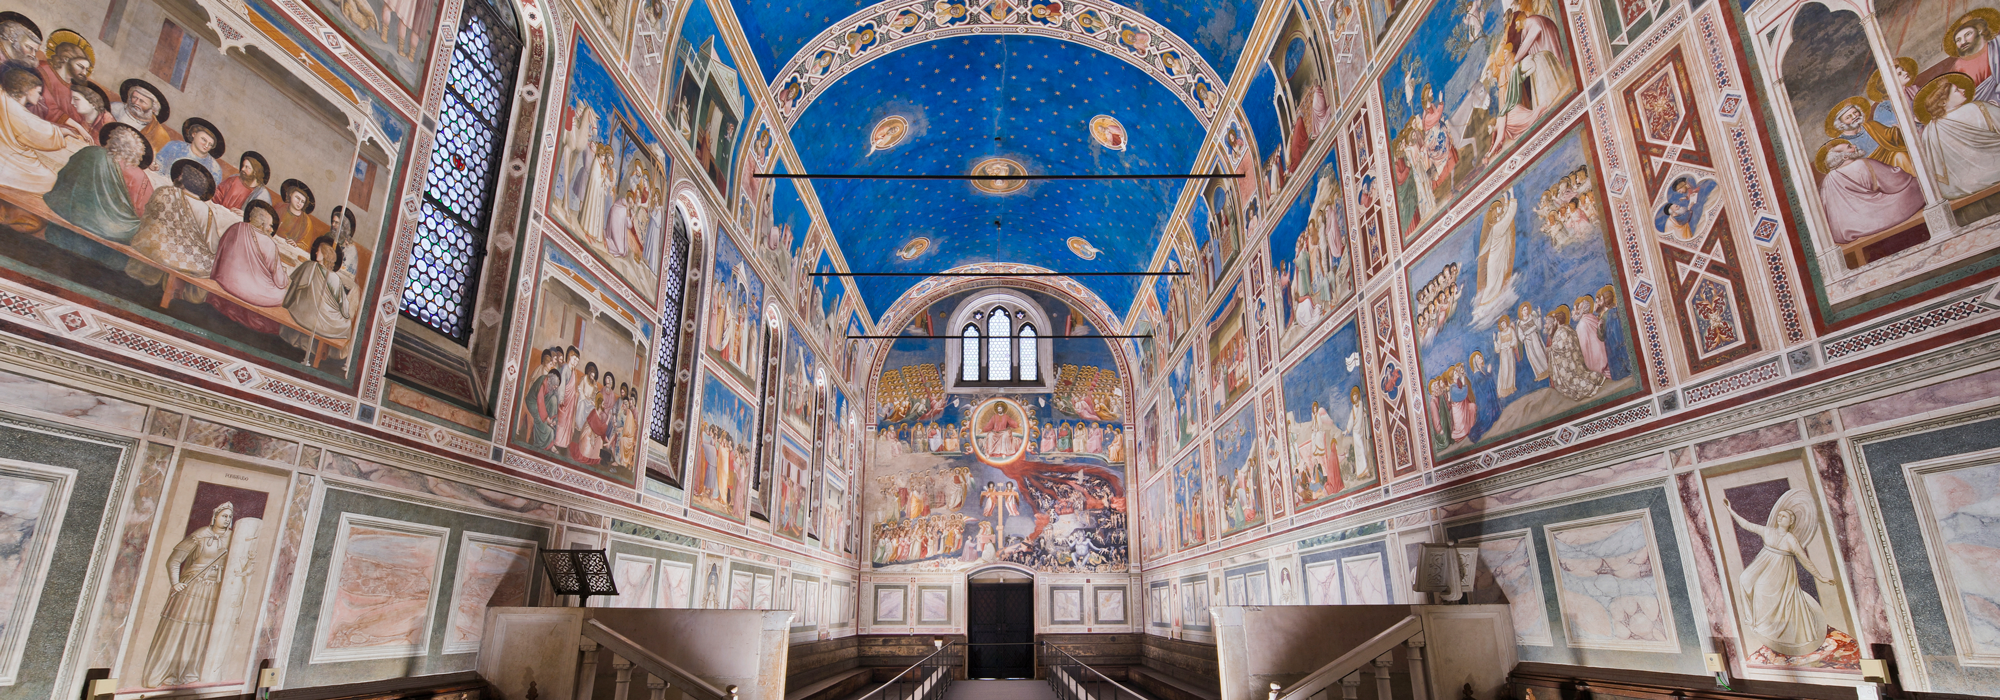 Giotto. The Scrovegni Chapel - Padua, Italy